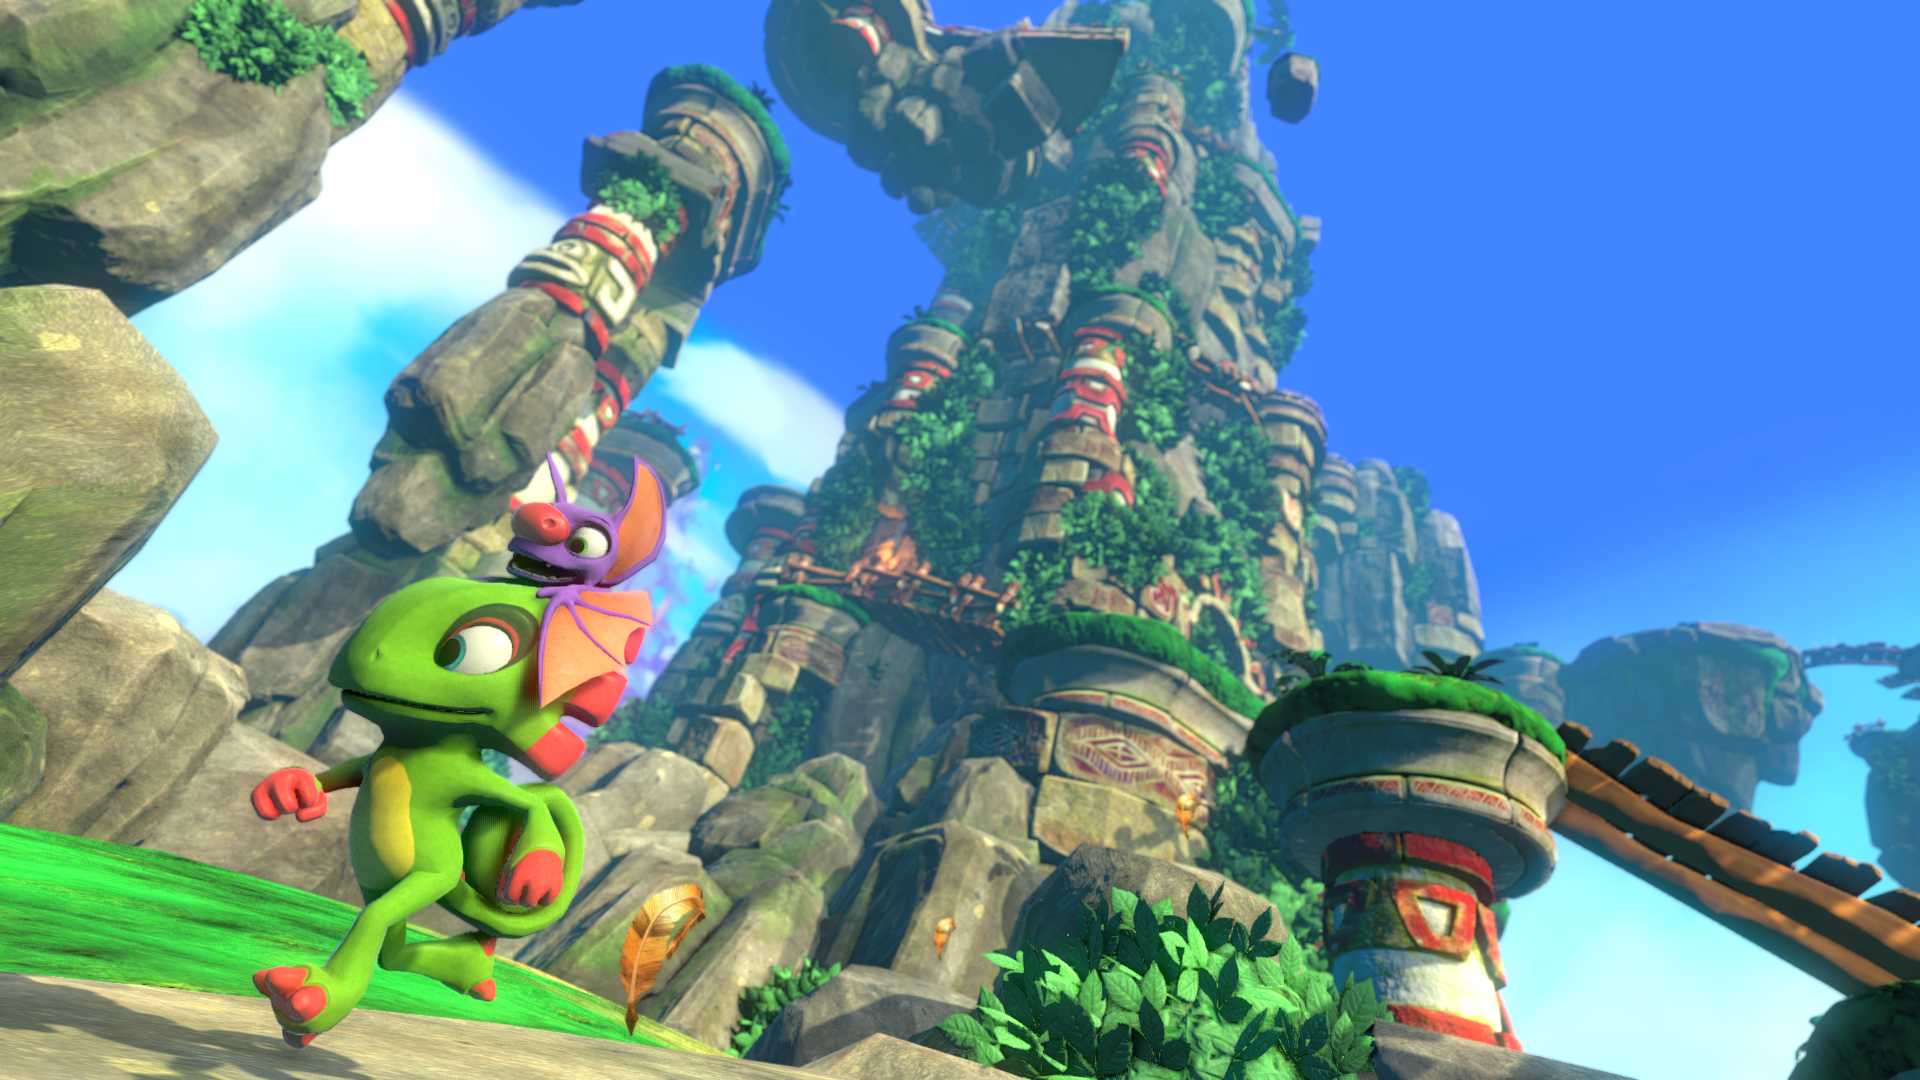 Yooka-Laylee's Credits Take Three Hours To Scroll Through